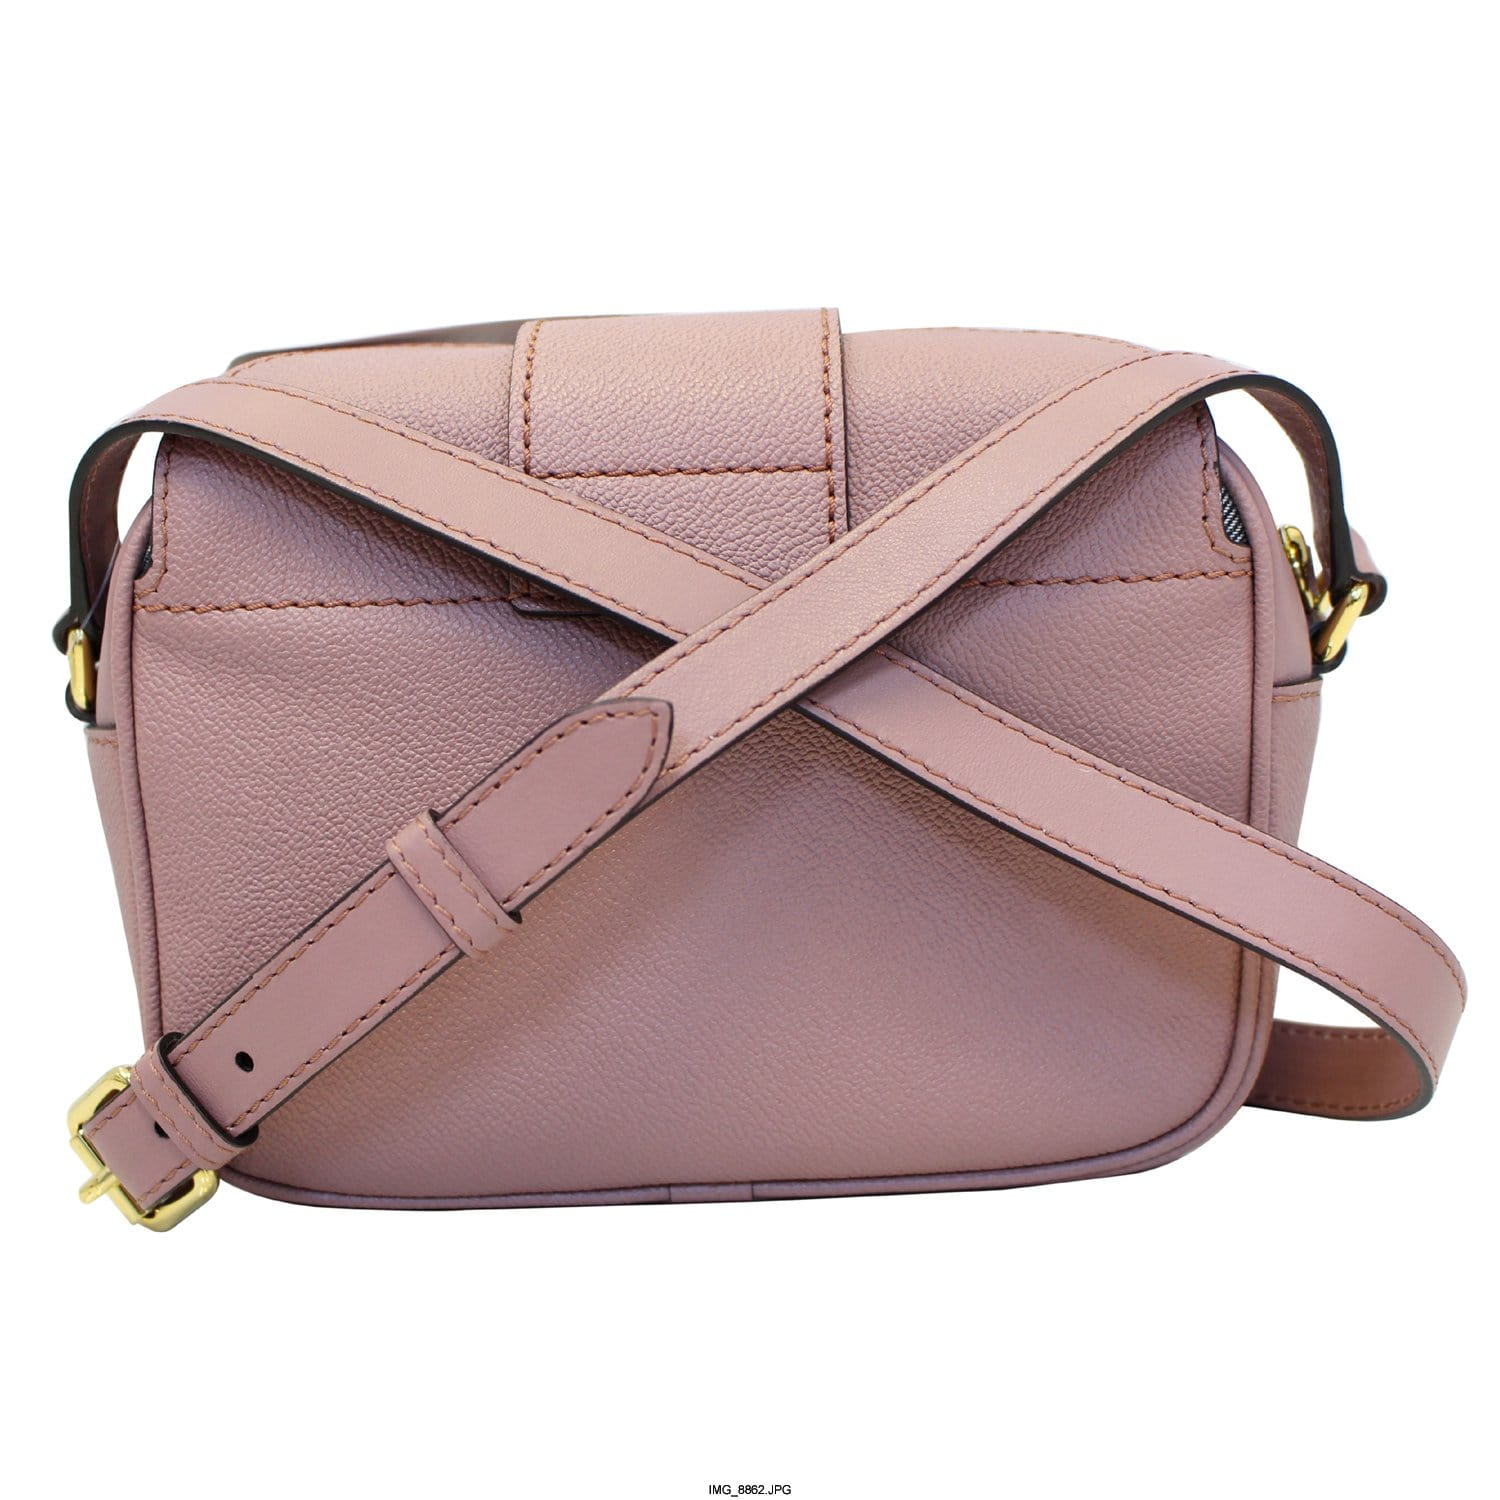 BURBERRY Medley Small Buckle Crossbody Bag Light Pink-US  d2bee0640af51